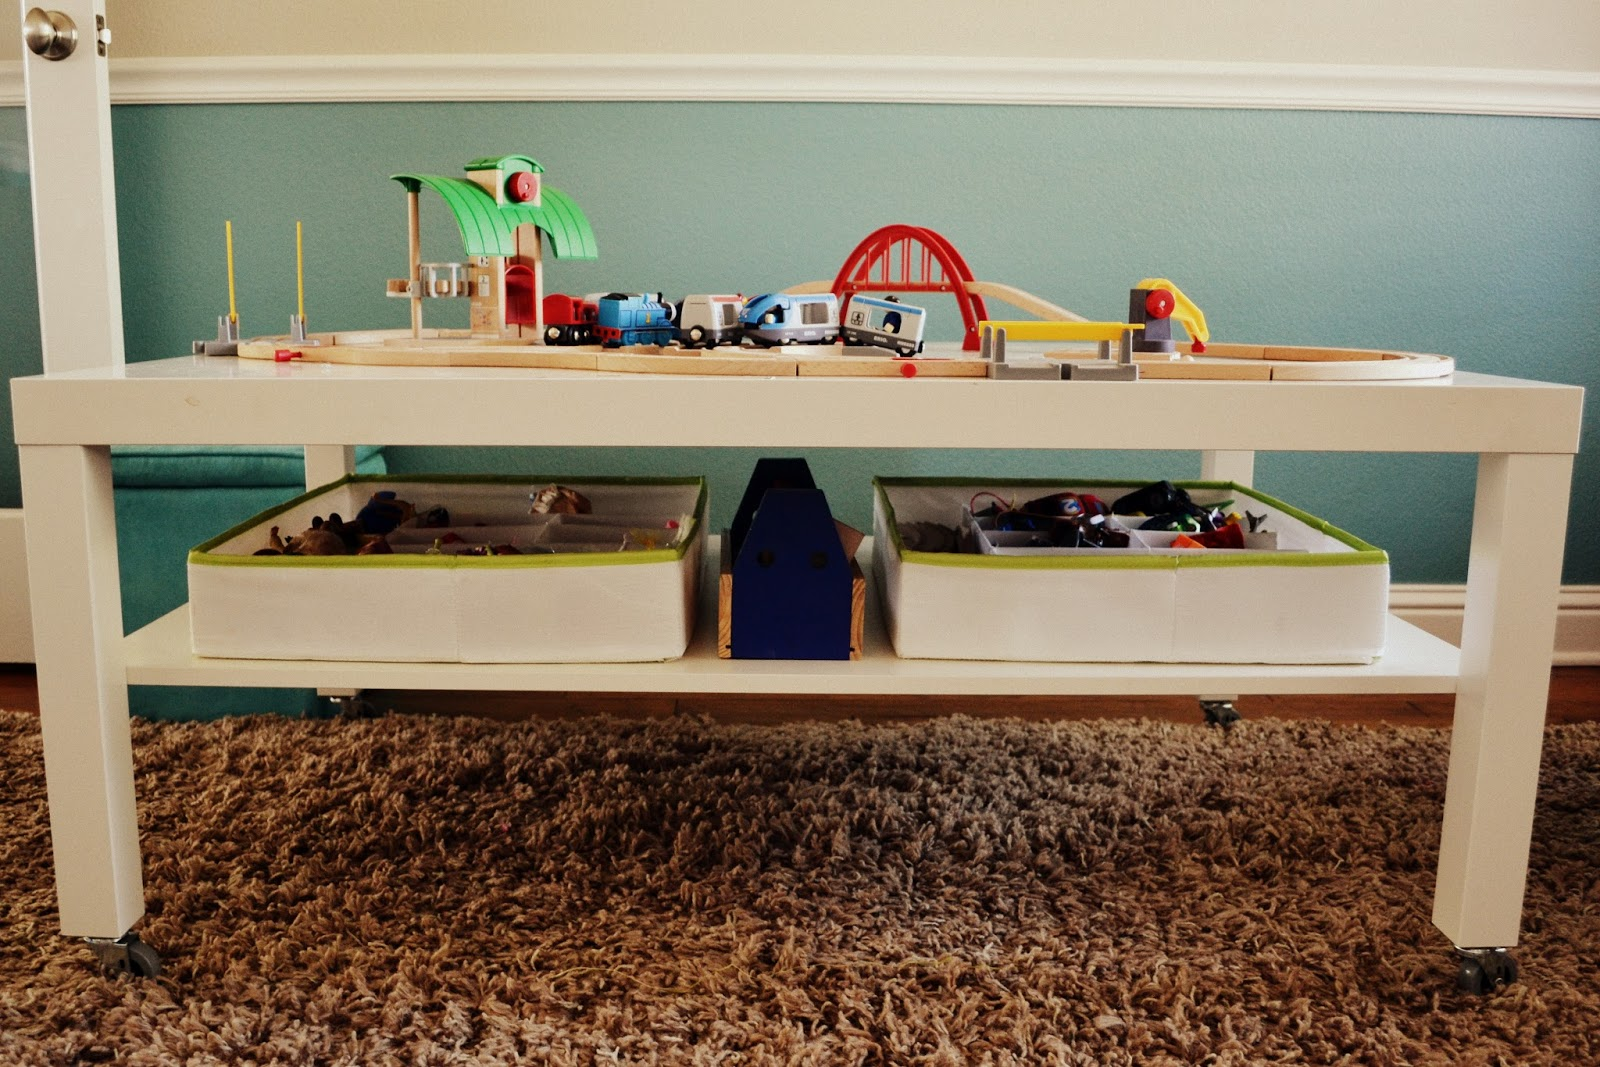 Miraculous Plan To Happy Toy Storage For The Playroom Means To Reduce Dailytribune Chair Design For Home Dailytribuneorg